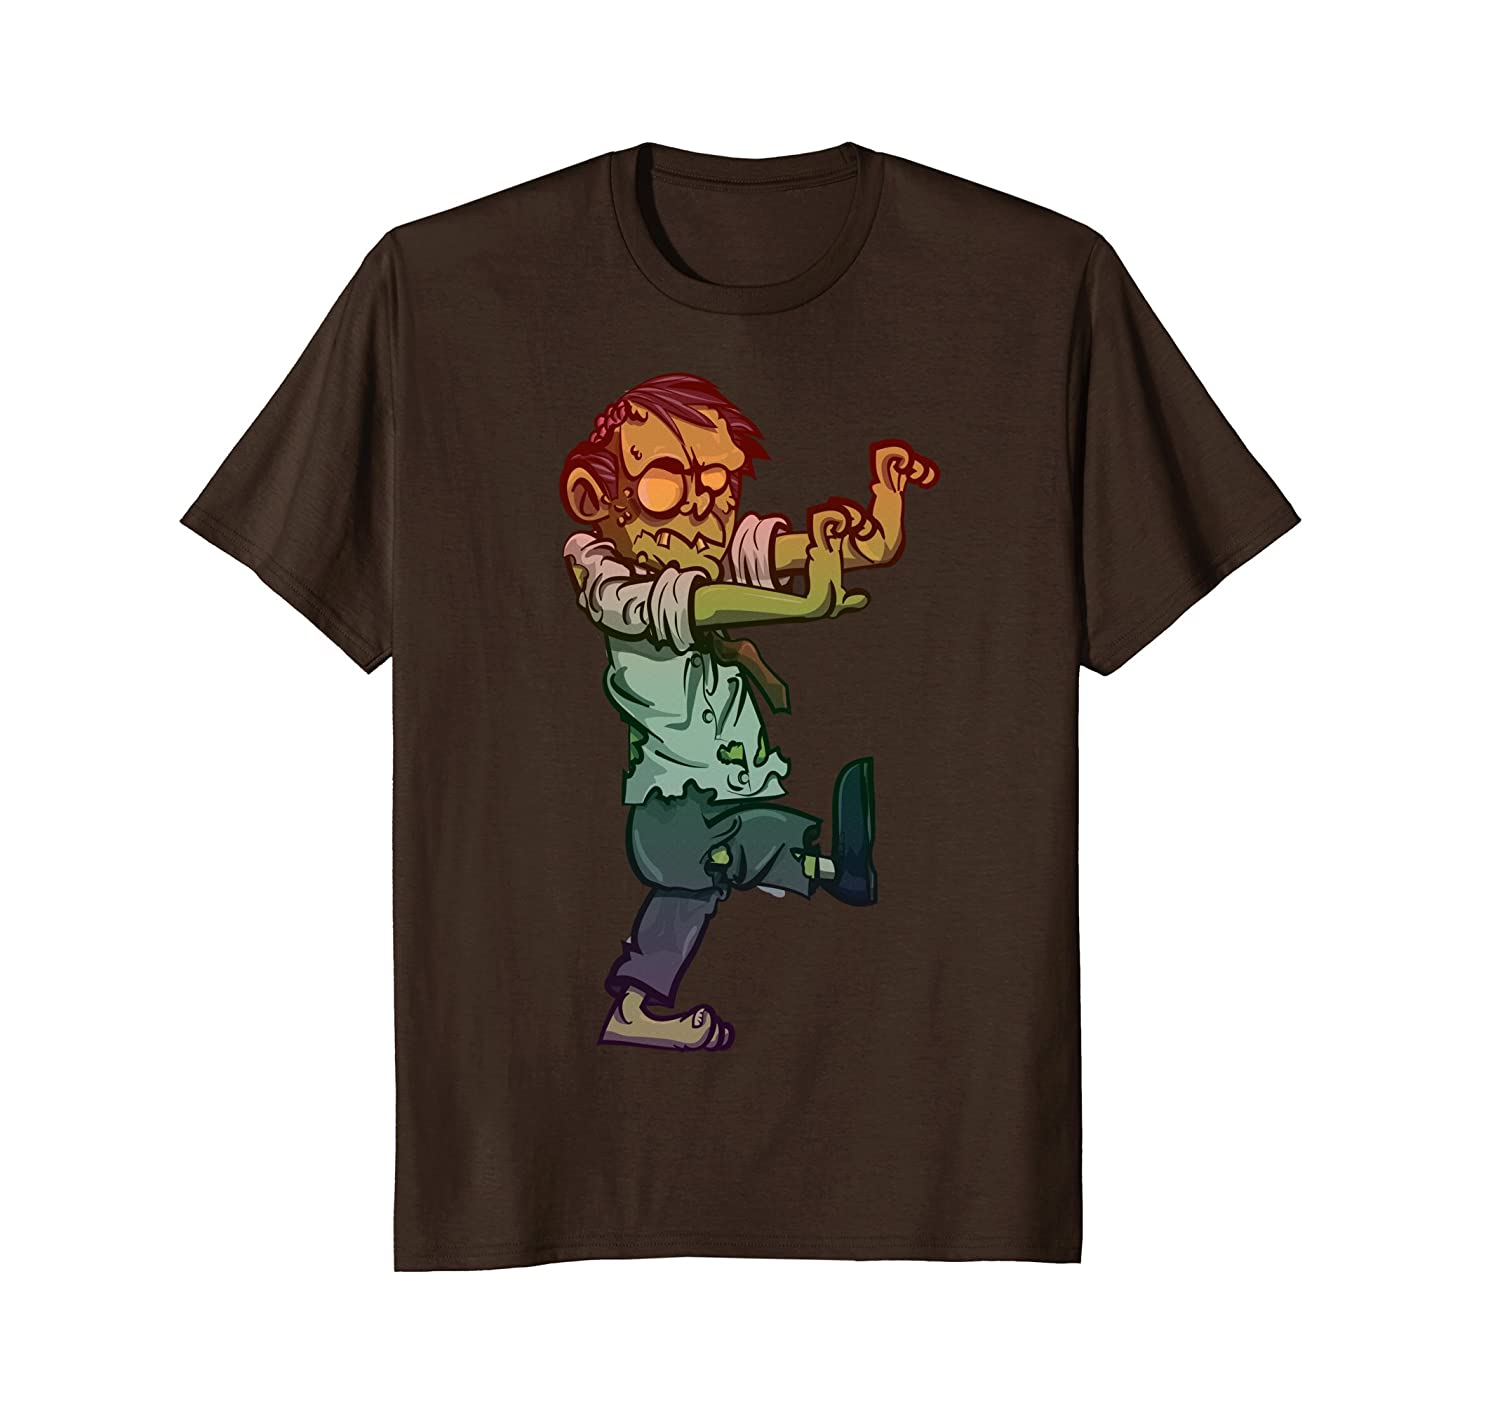 Zombie T-Shirts For Women Men's or Kids Funny Halloween Tee-Rose